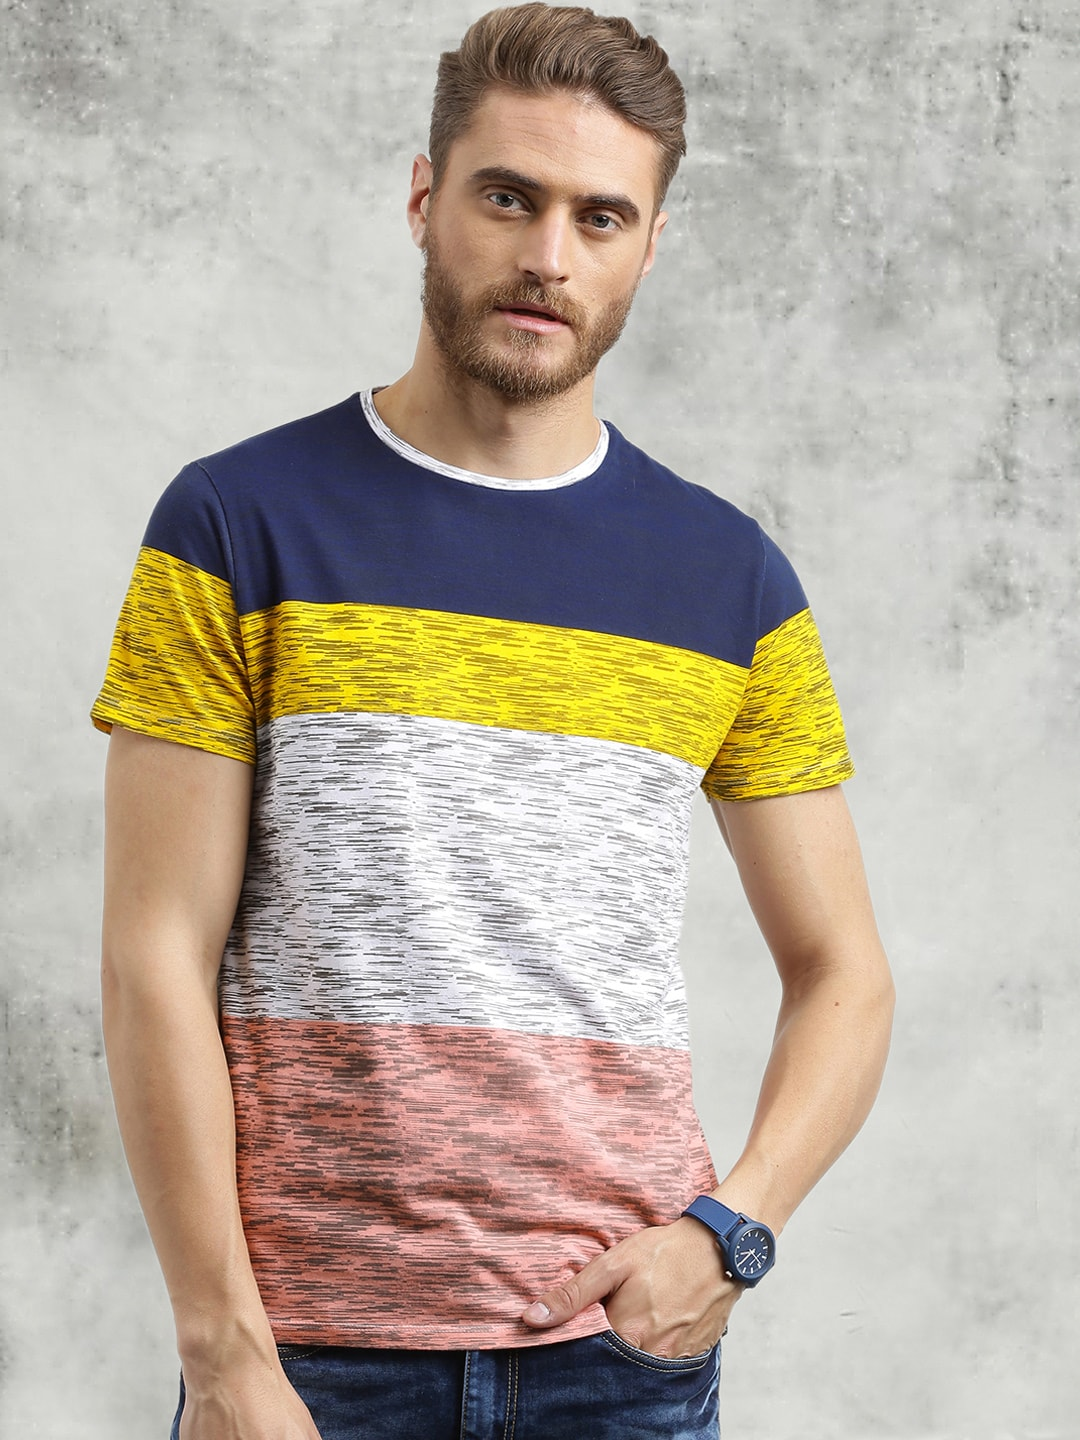 Buy Breakbounce Multicolored Colourblocked Round Neck Men's T-shirt At Best Price